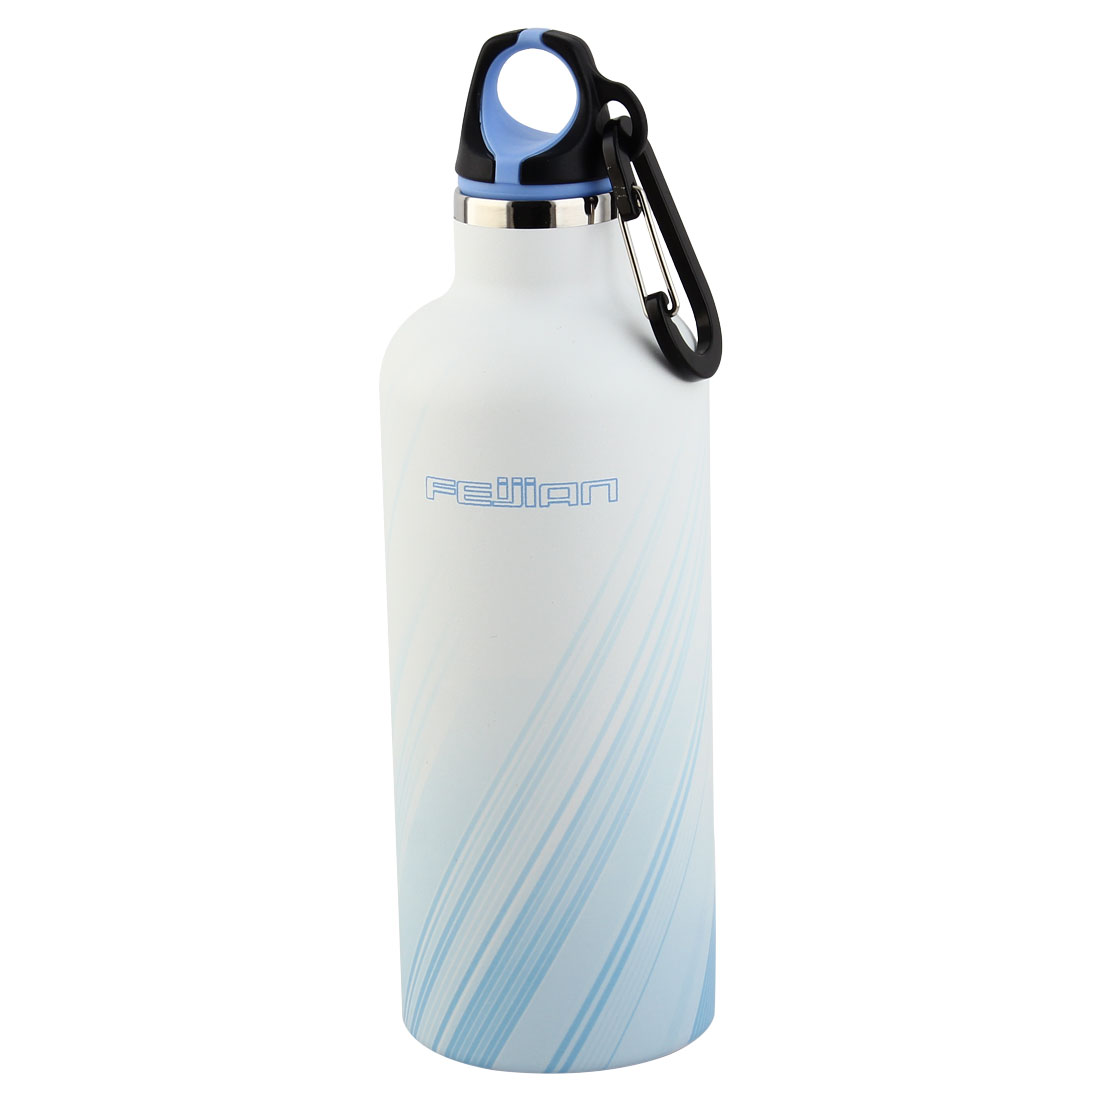 FEIJIAN Authorized Outdoor Sports Stainless Steel Double Walled Vacuum Insulated Heat Retaining Flask Water Bottle Blue 17 oz 500ml